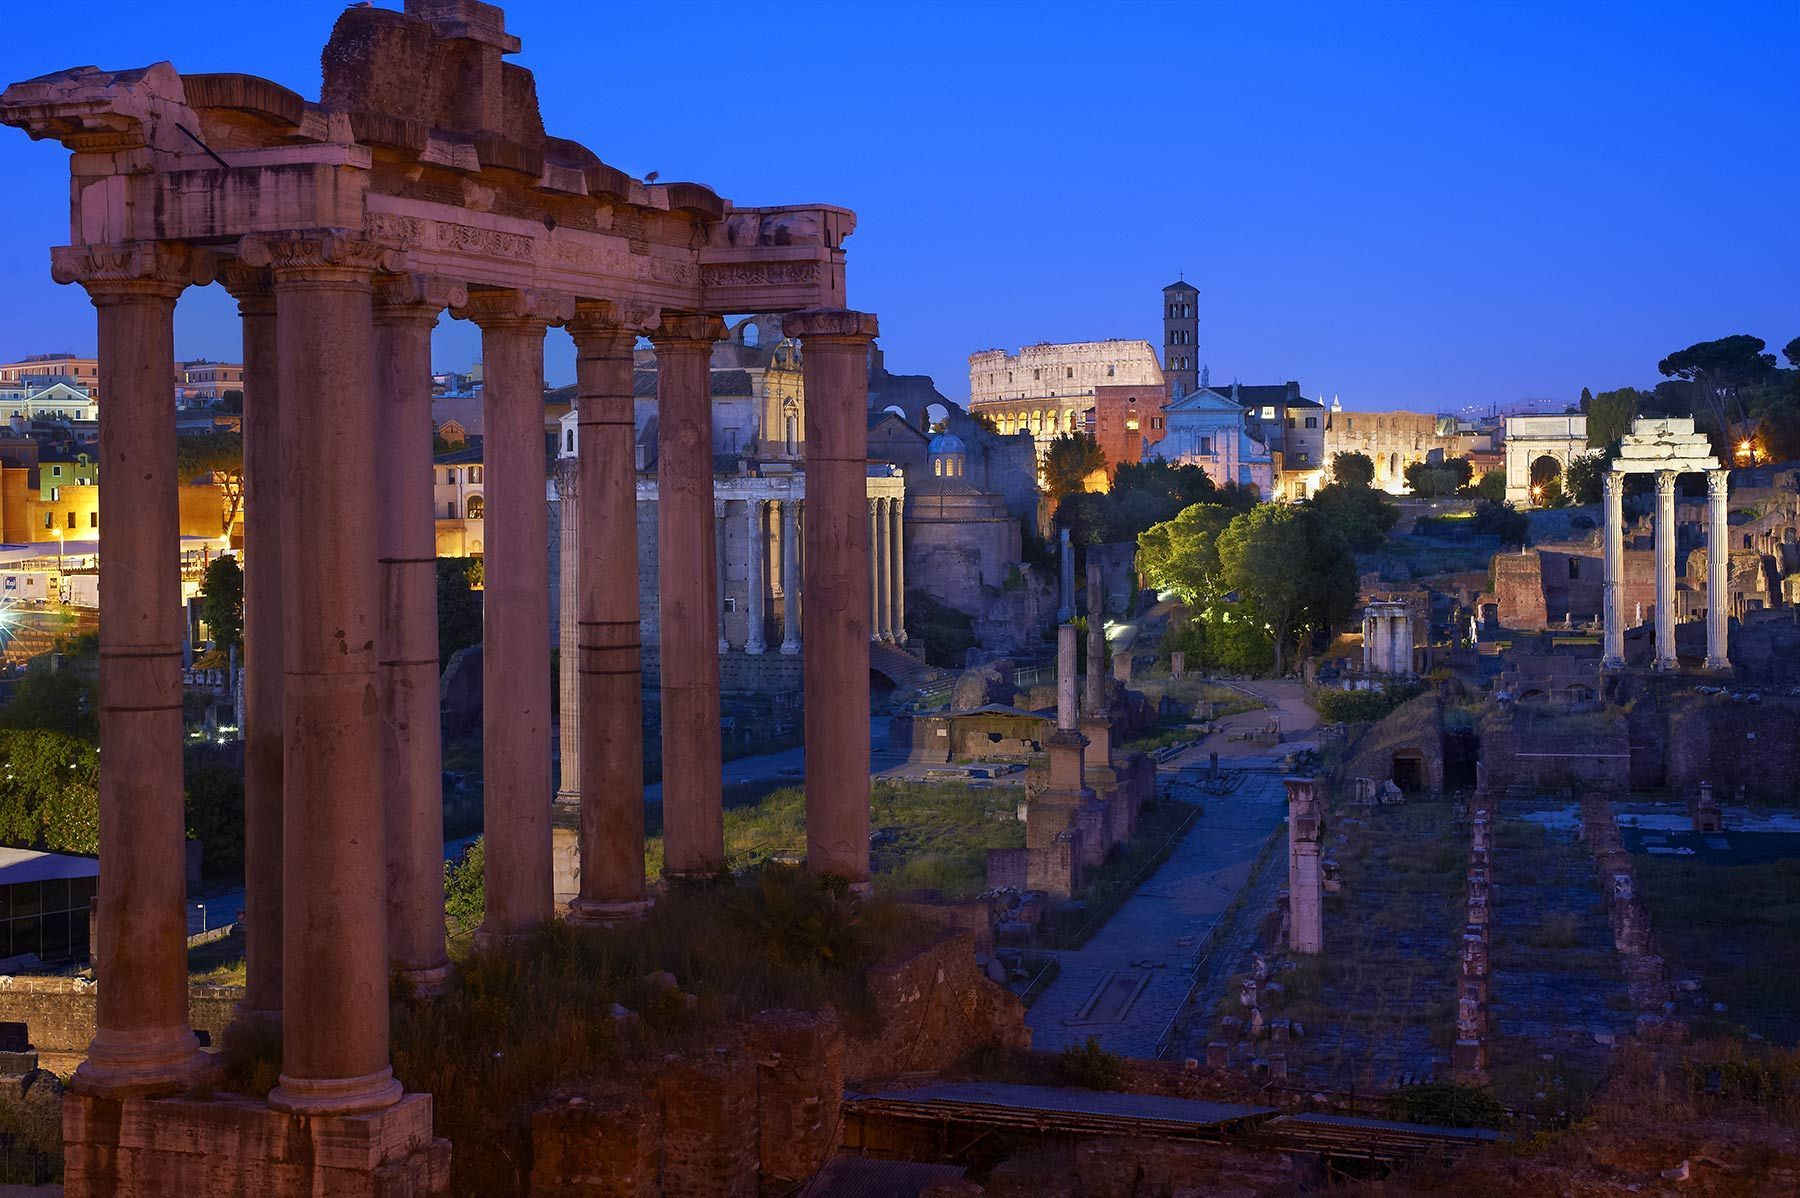 The Temple of Saturn, Rome, Italy